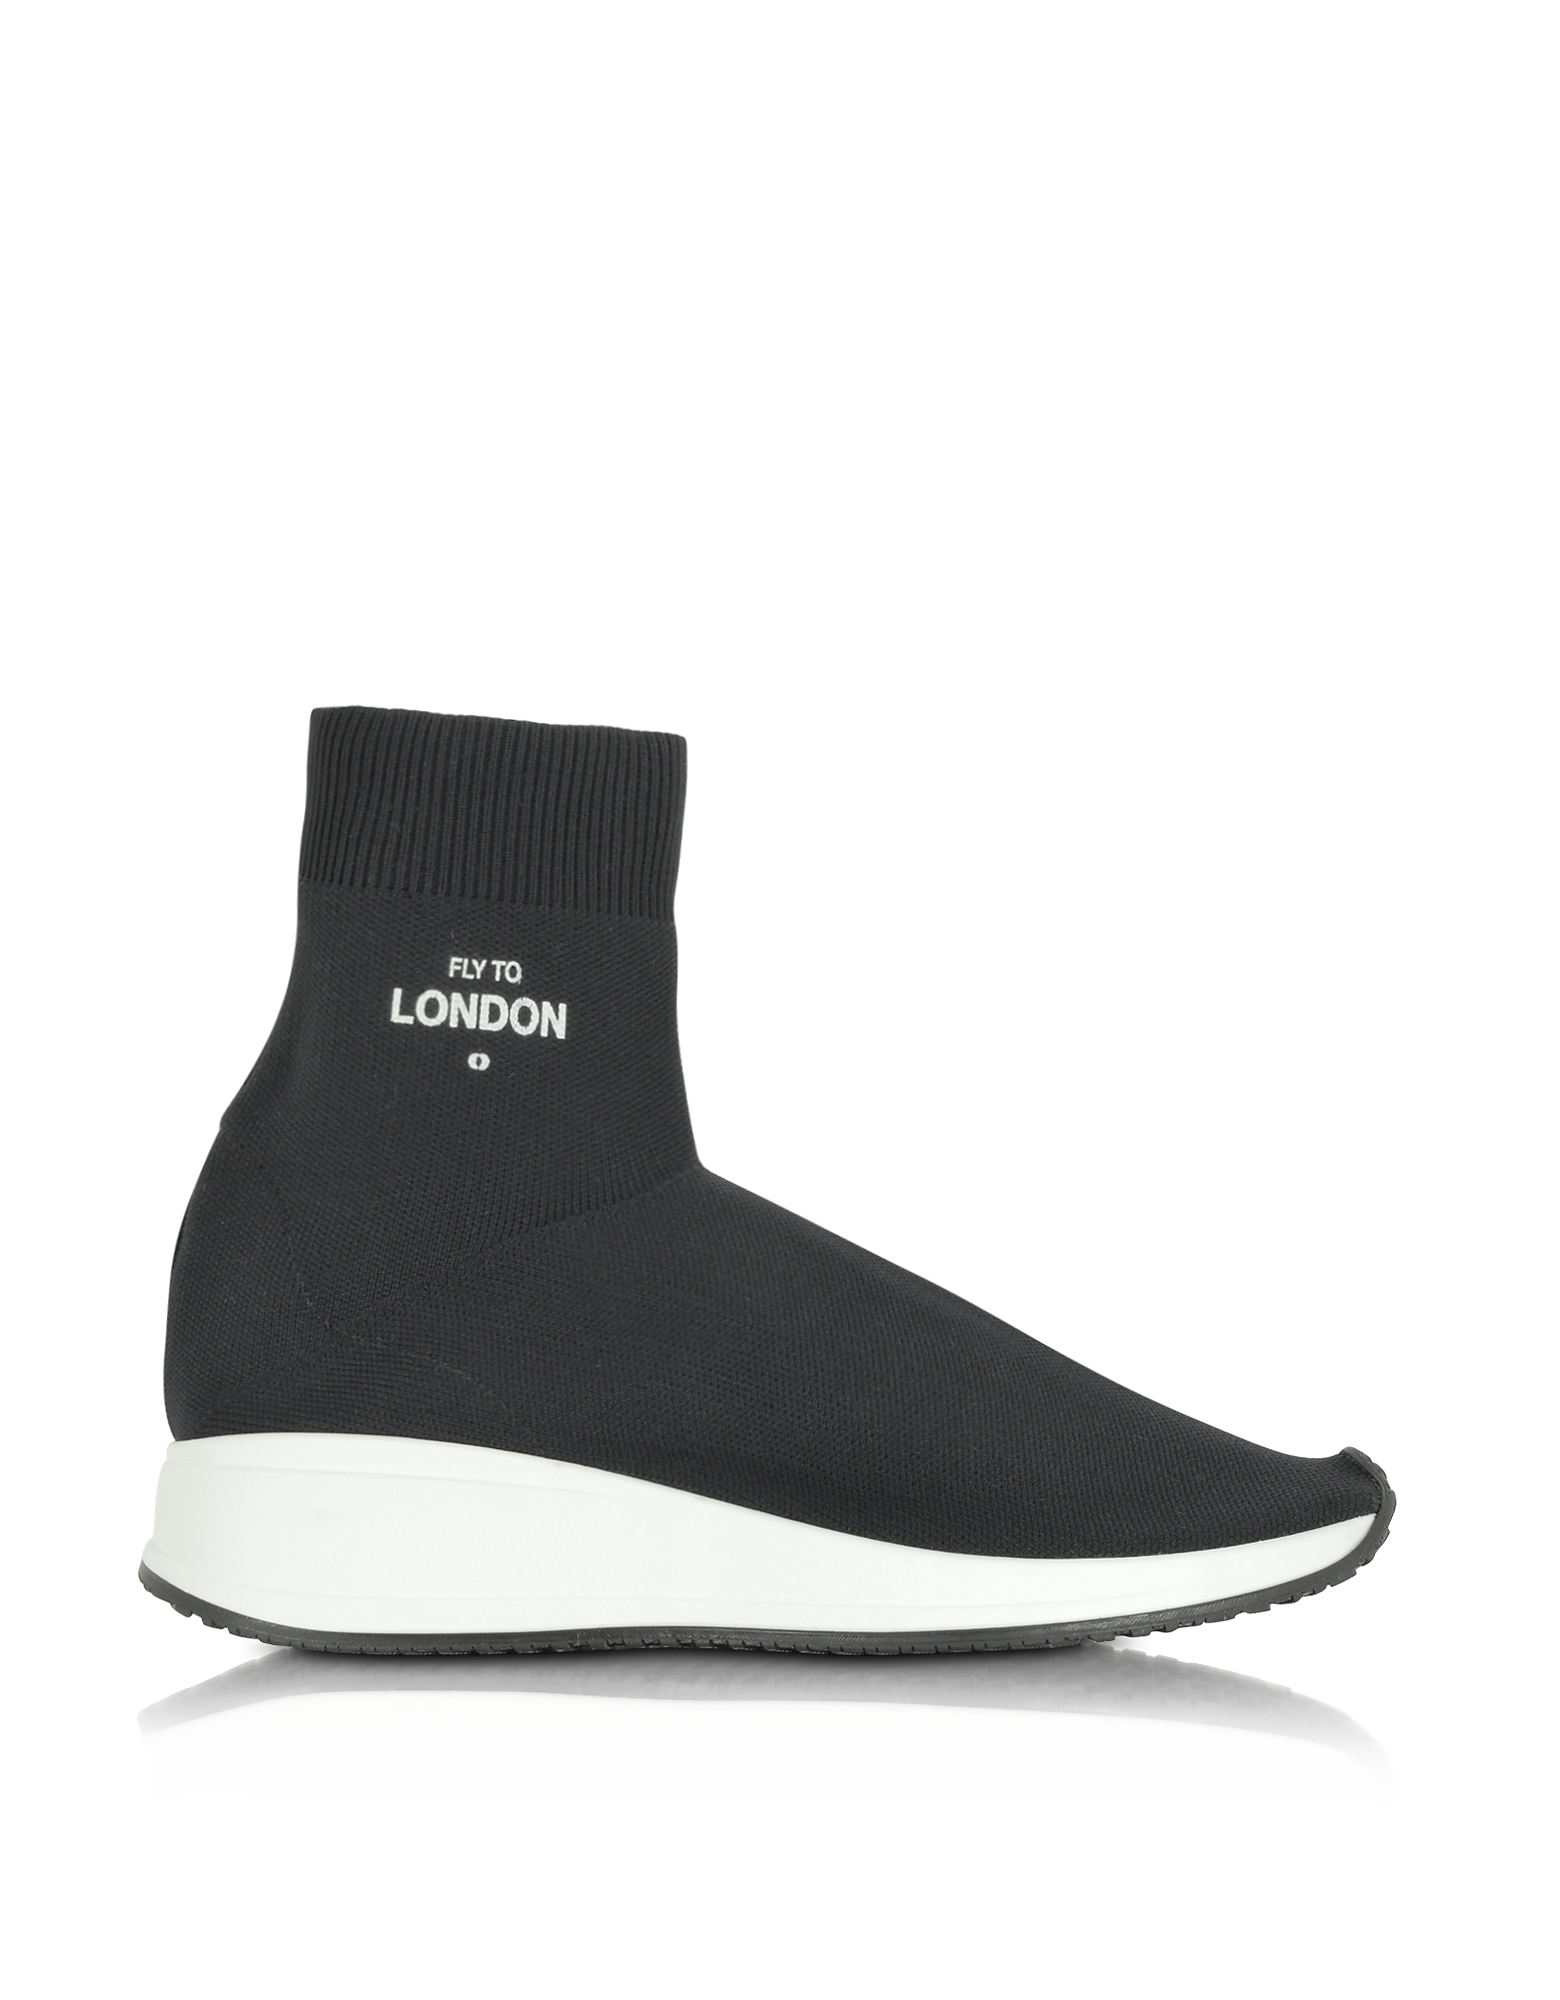 Joshua Sanders Shoes, Fly To London Black Nylon Sock Unisex Sneakers